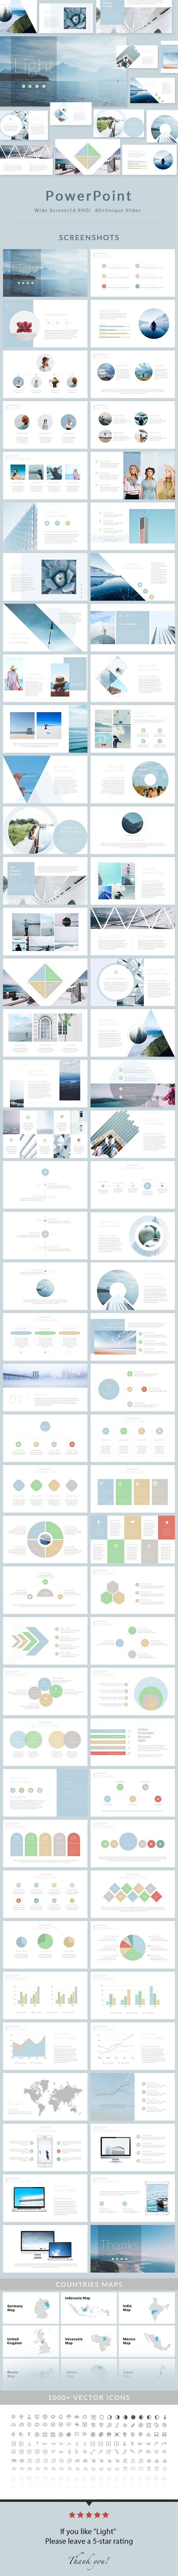 84 best free presentation templates images on pinterest free light powerpoint presentation template toneelgroepblik Images